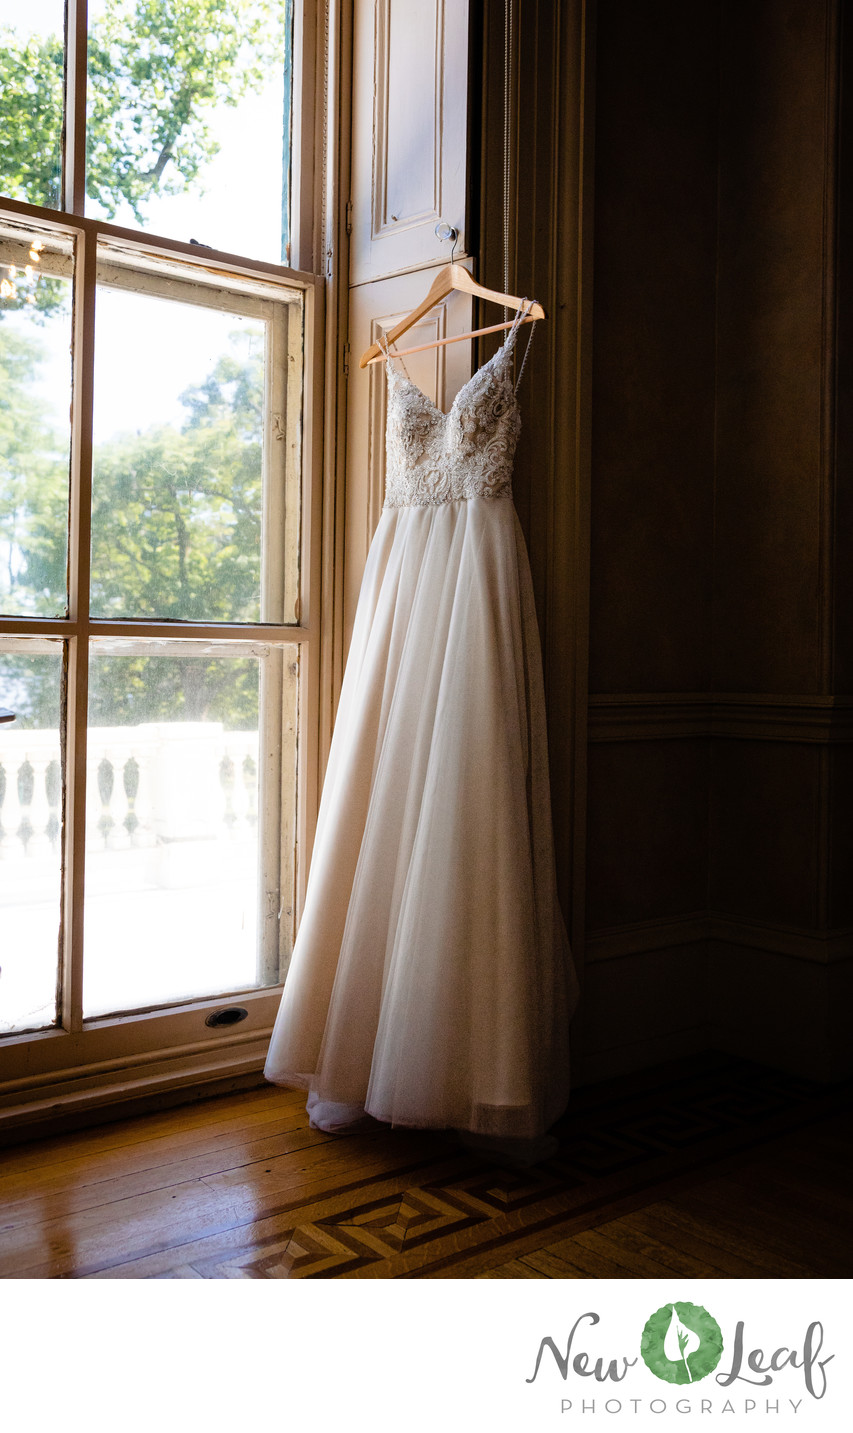 Wedding Dress at Glen Foerd on the Delaware